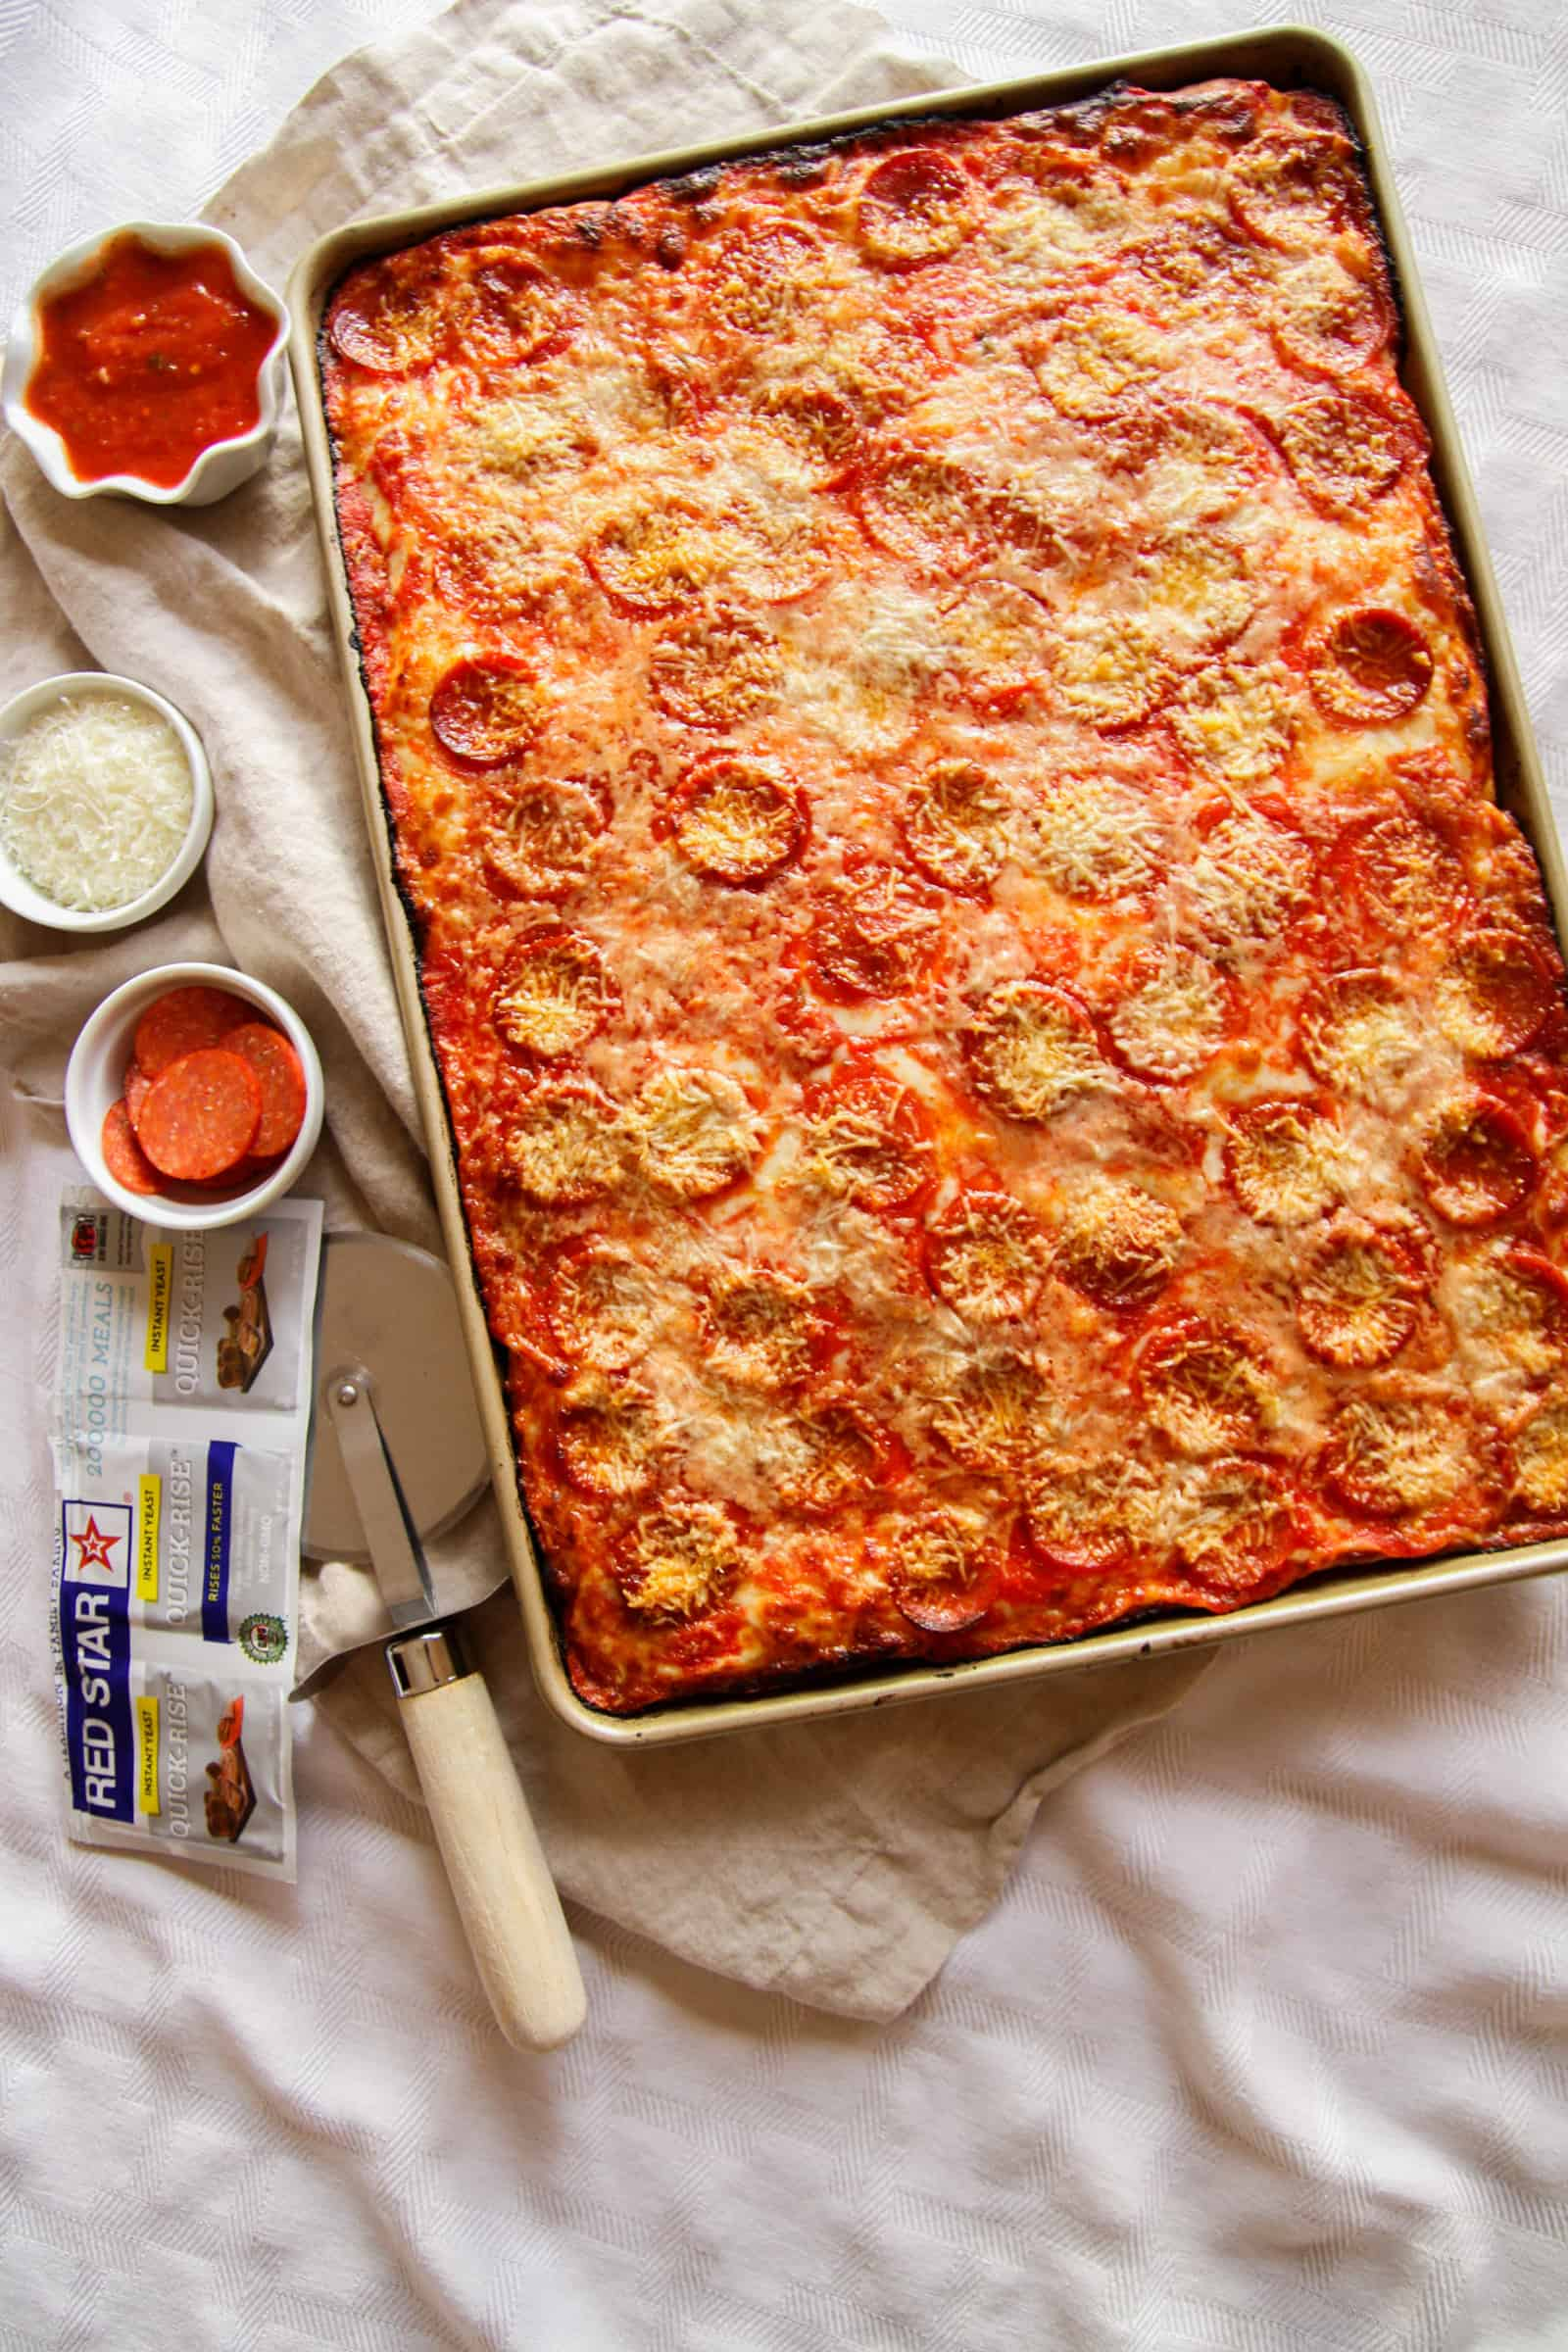 sheet pan pizza made with Red Star Yeast, square pizza